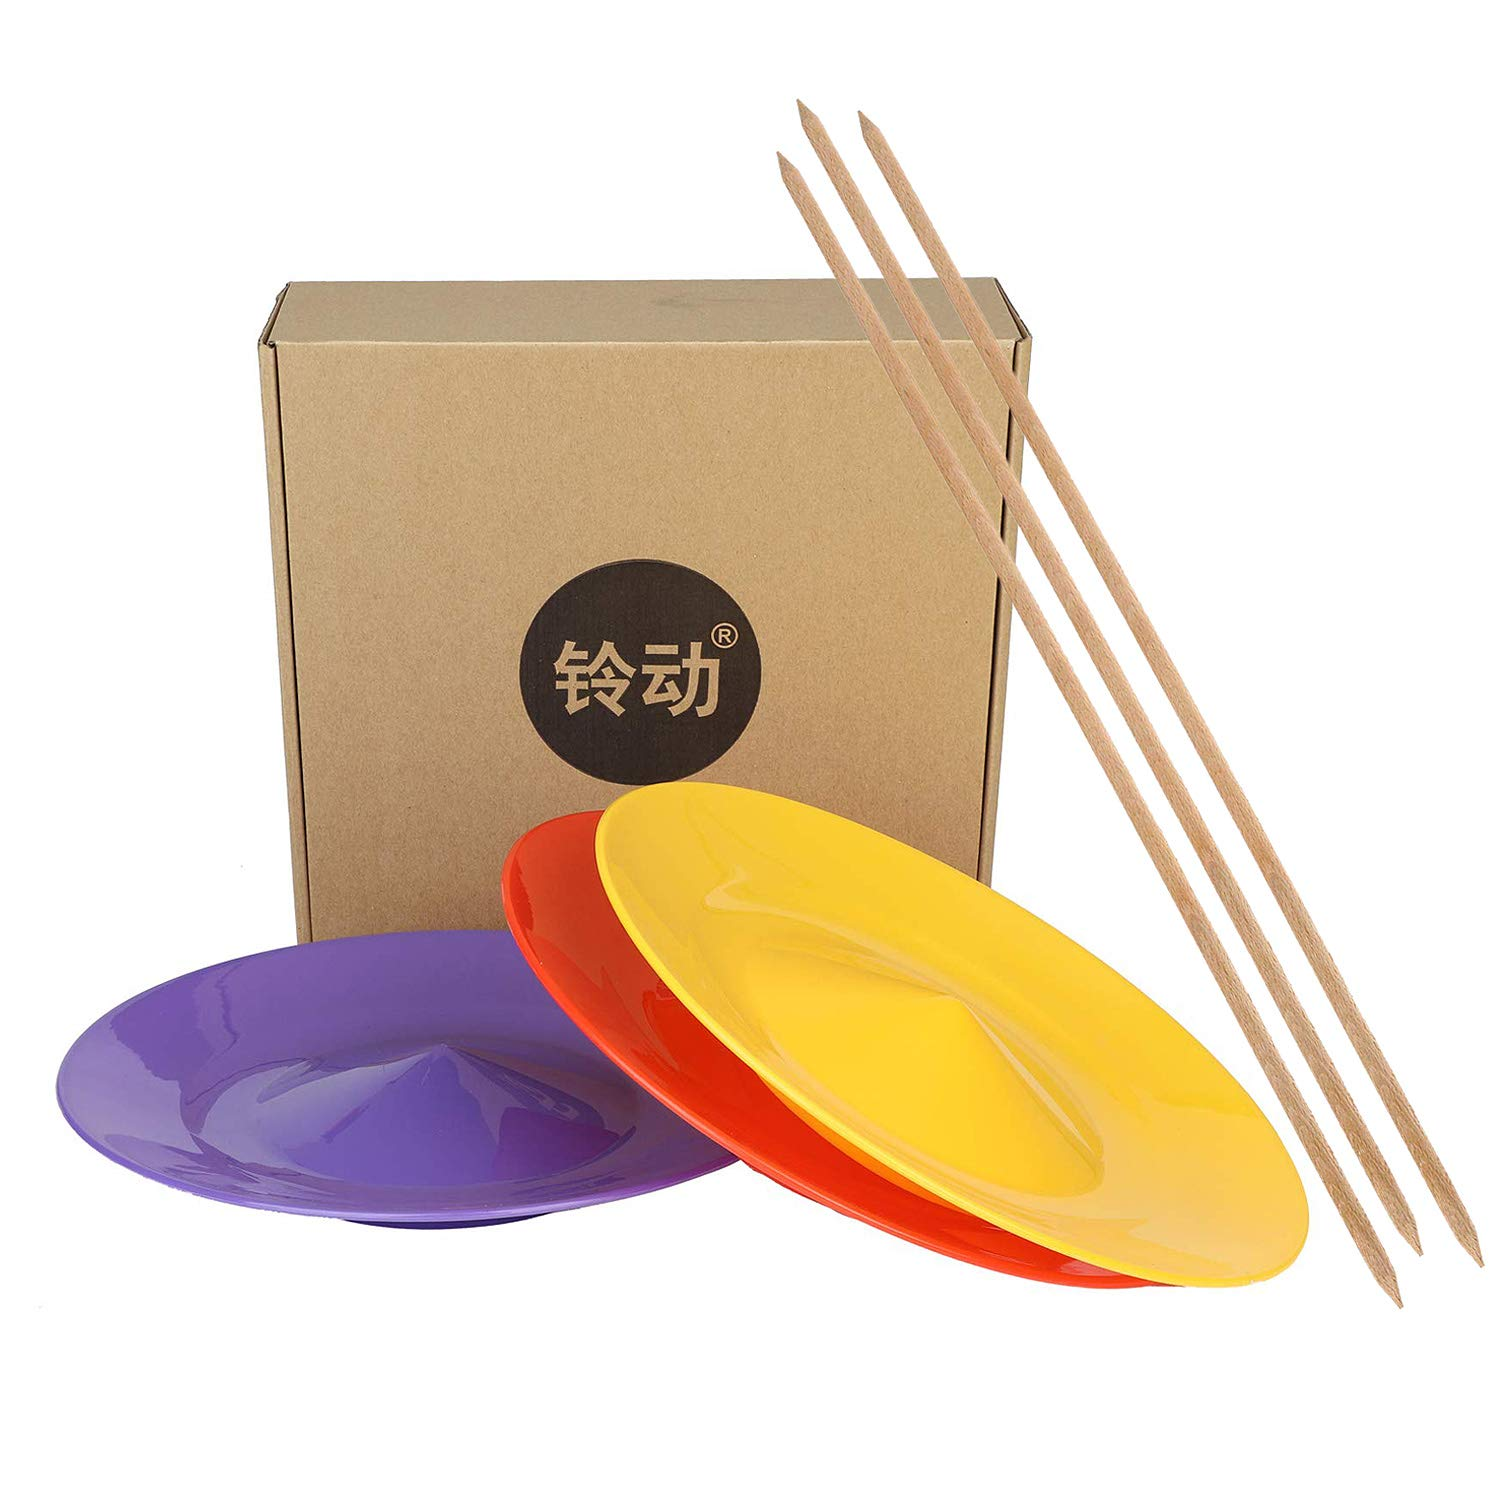 YuXing Professional Spinning Plates / Juggling Plates Set of 3 (11'' 3.8OZ Red Yellow Purple) with 3 Durable Sticks (22.6 Inches 0.7 Ounce) Fit All by YuXing TOY